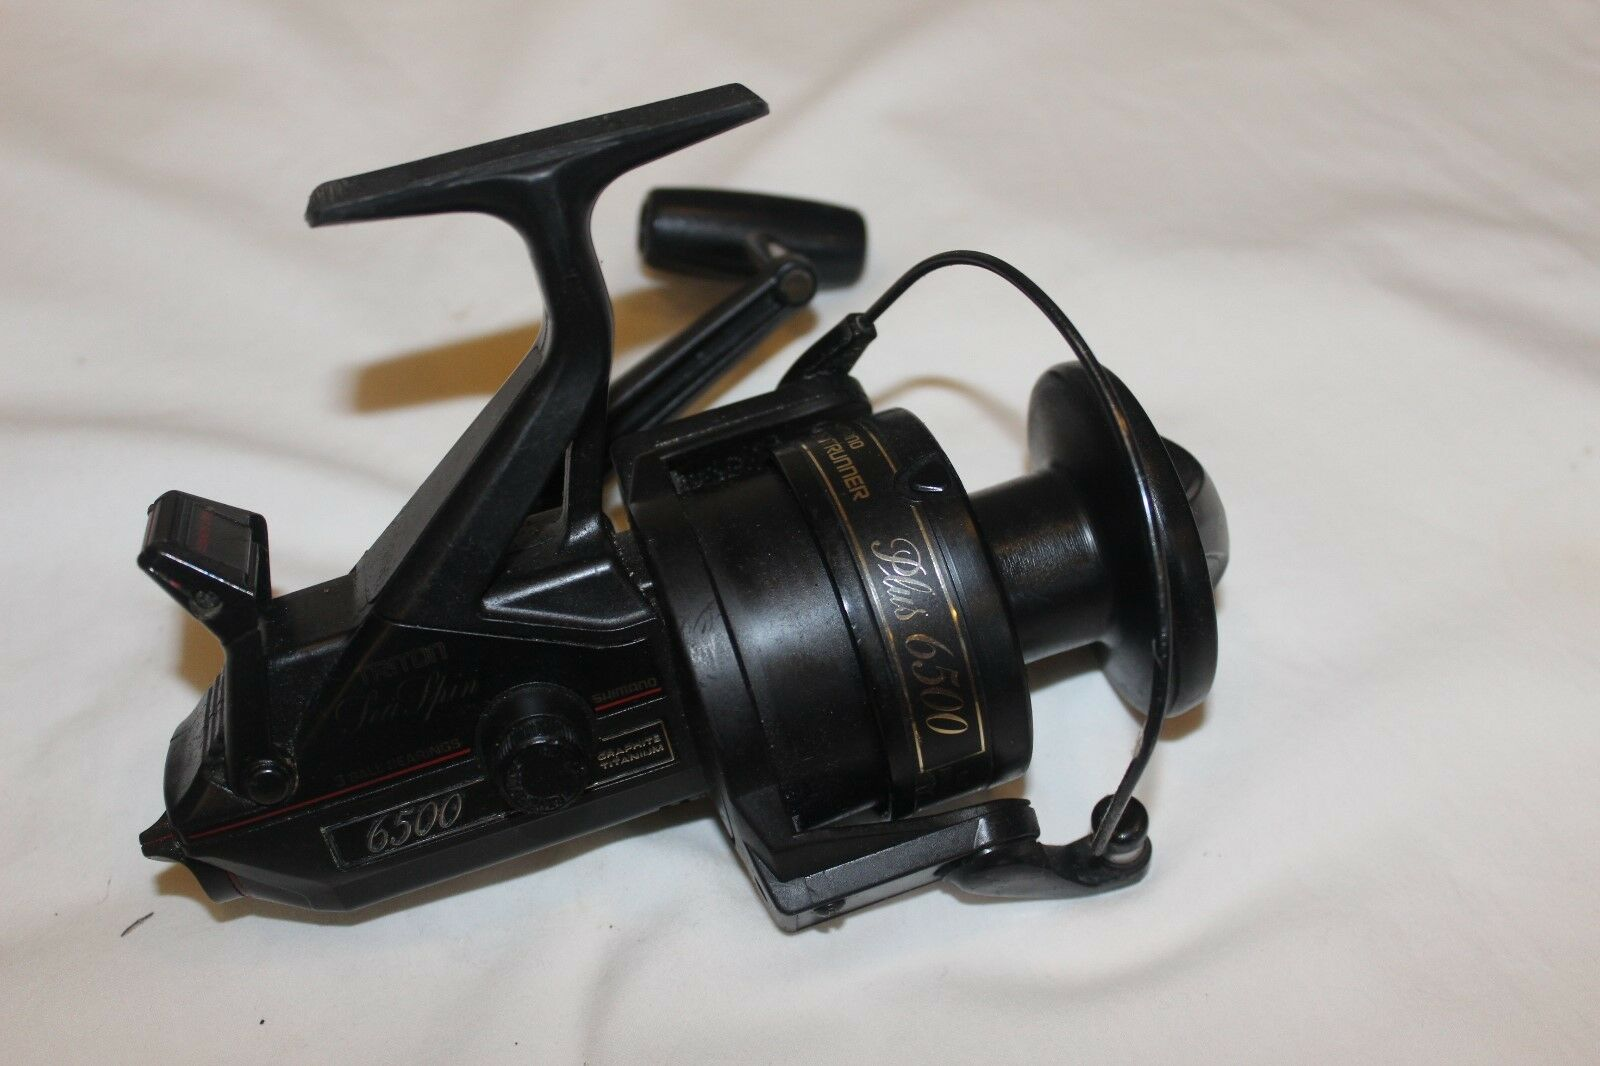 Shimano Baitrunner 6500-Made in Japan-nr-1164   the classic style